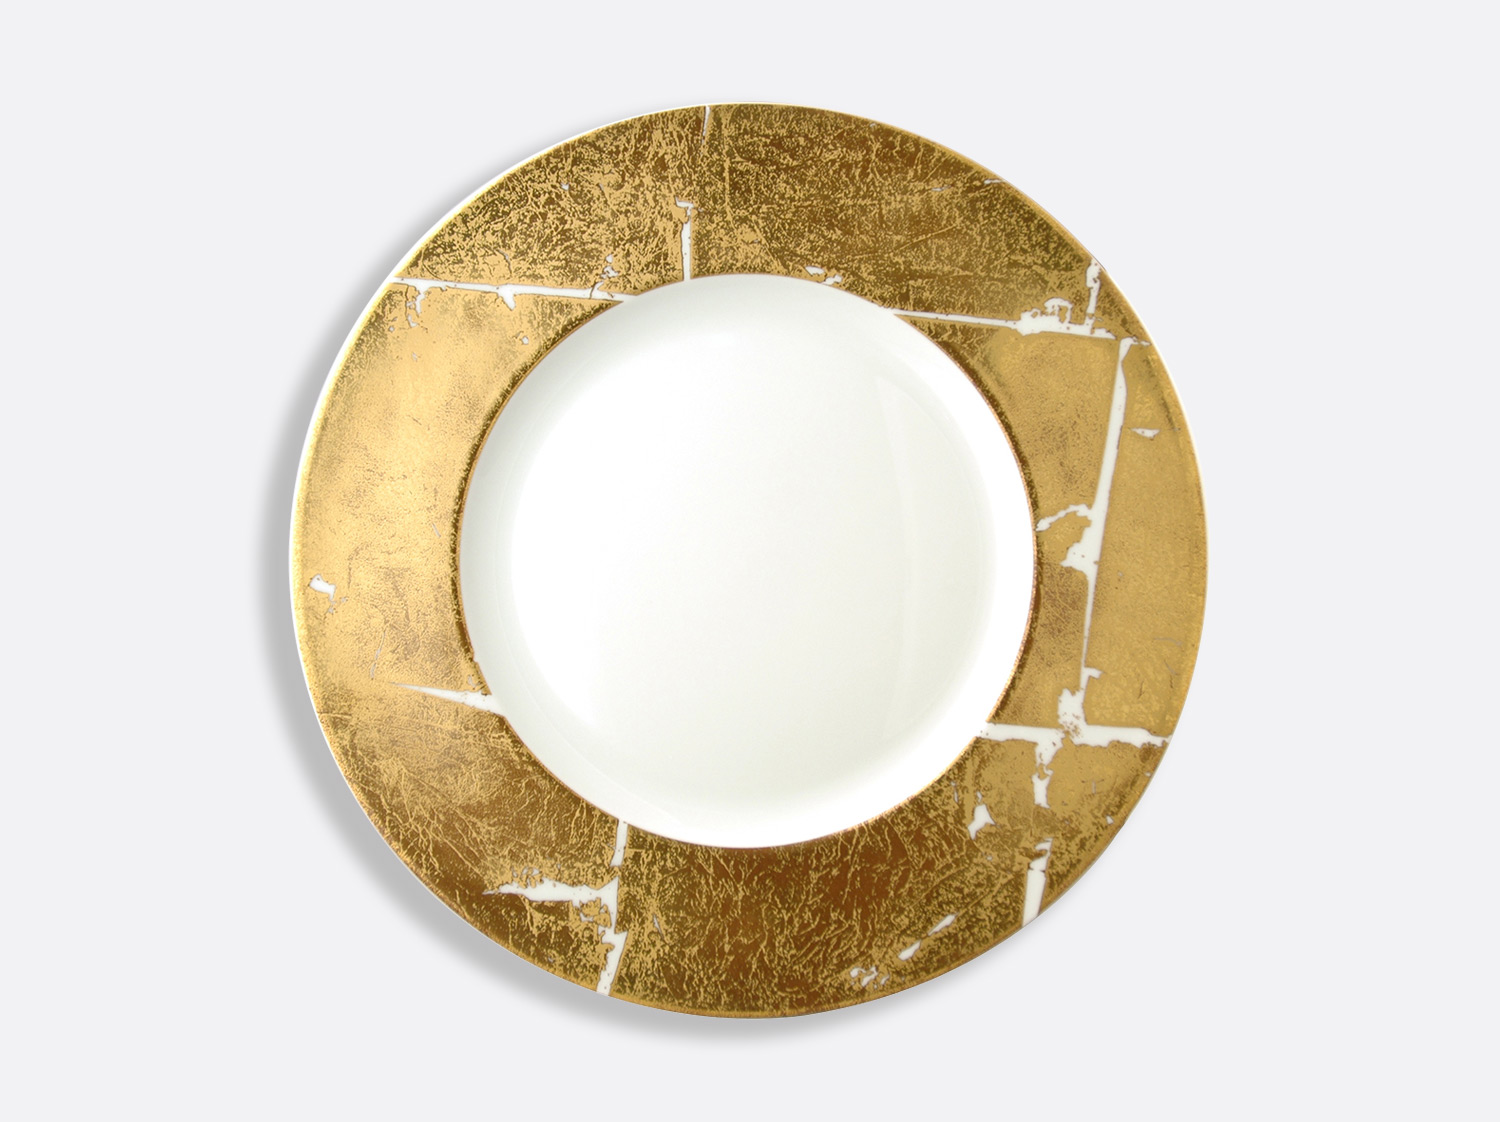 China Shogun plate 31.5 cm of the collection Gold leaf | Bernardaud